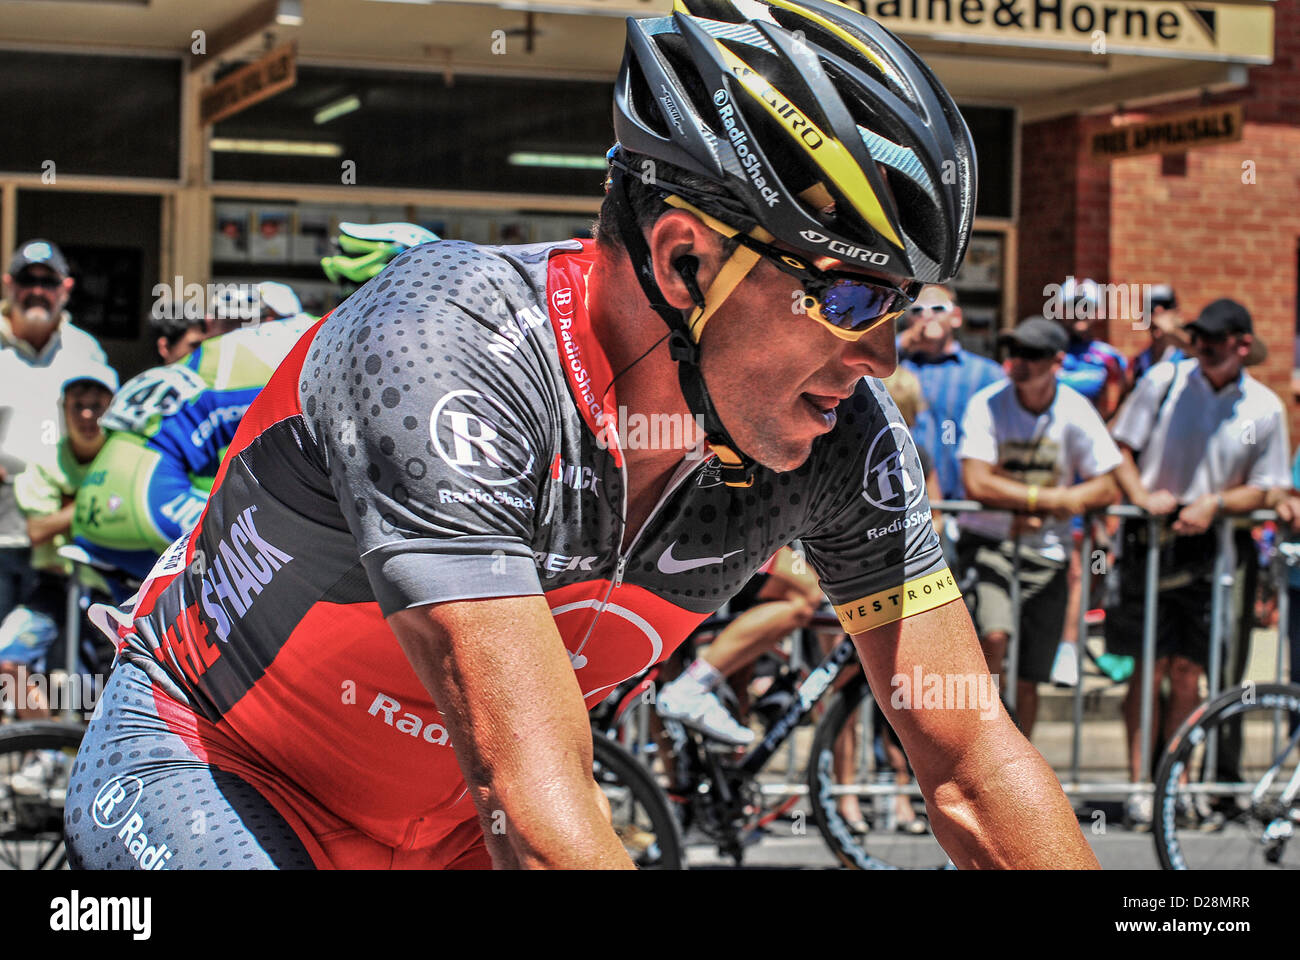 Lance Armstrong in his full cycling team uniform competing in Australia's Tour Down Under. - Stock Image